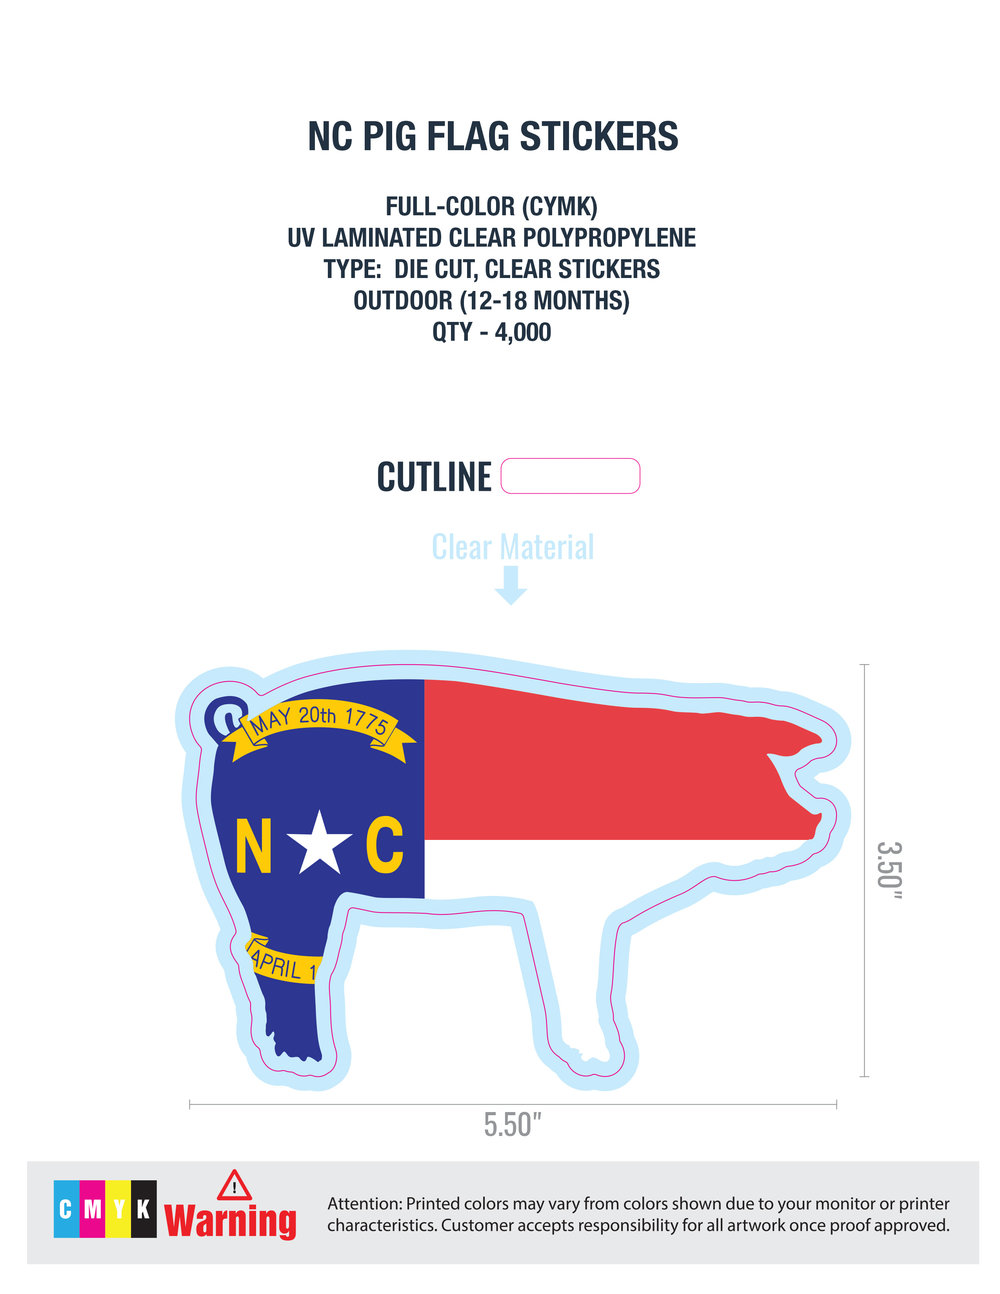 NC Pig Flag Sticker - 2-3 Day Production Time